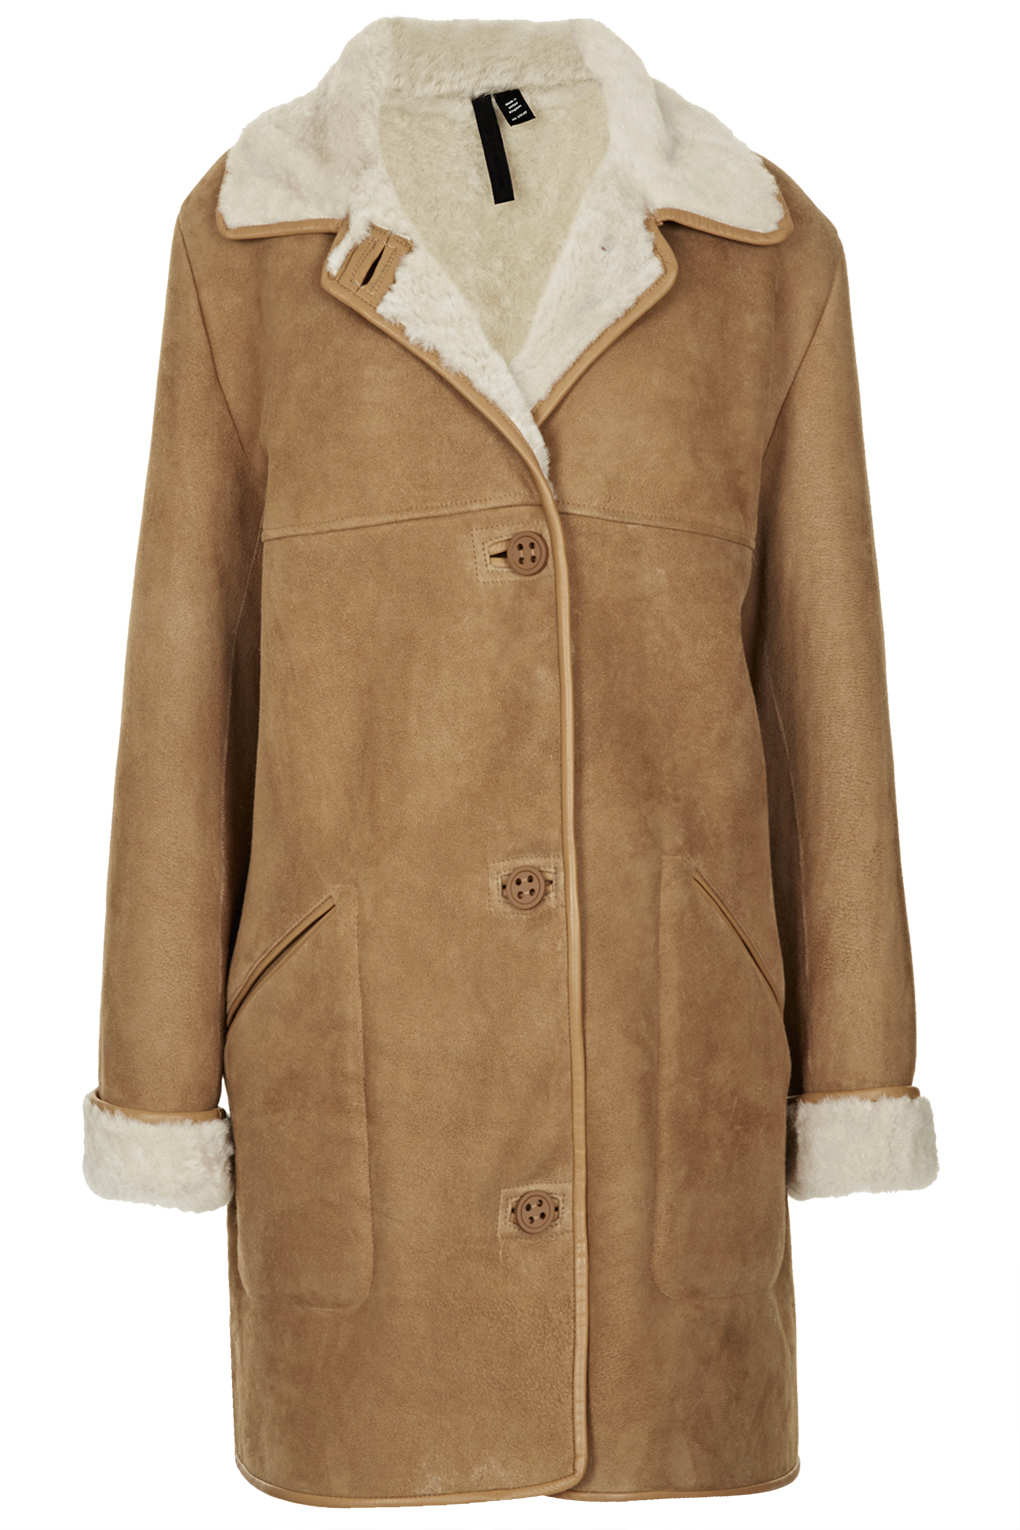 Topshop Ultimate Sheepskin Coat By Boutique in Brown | Lyst